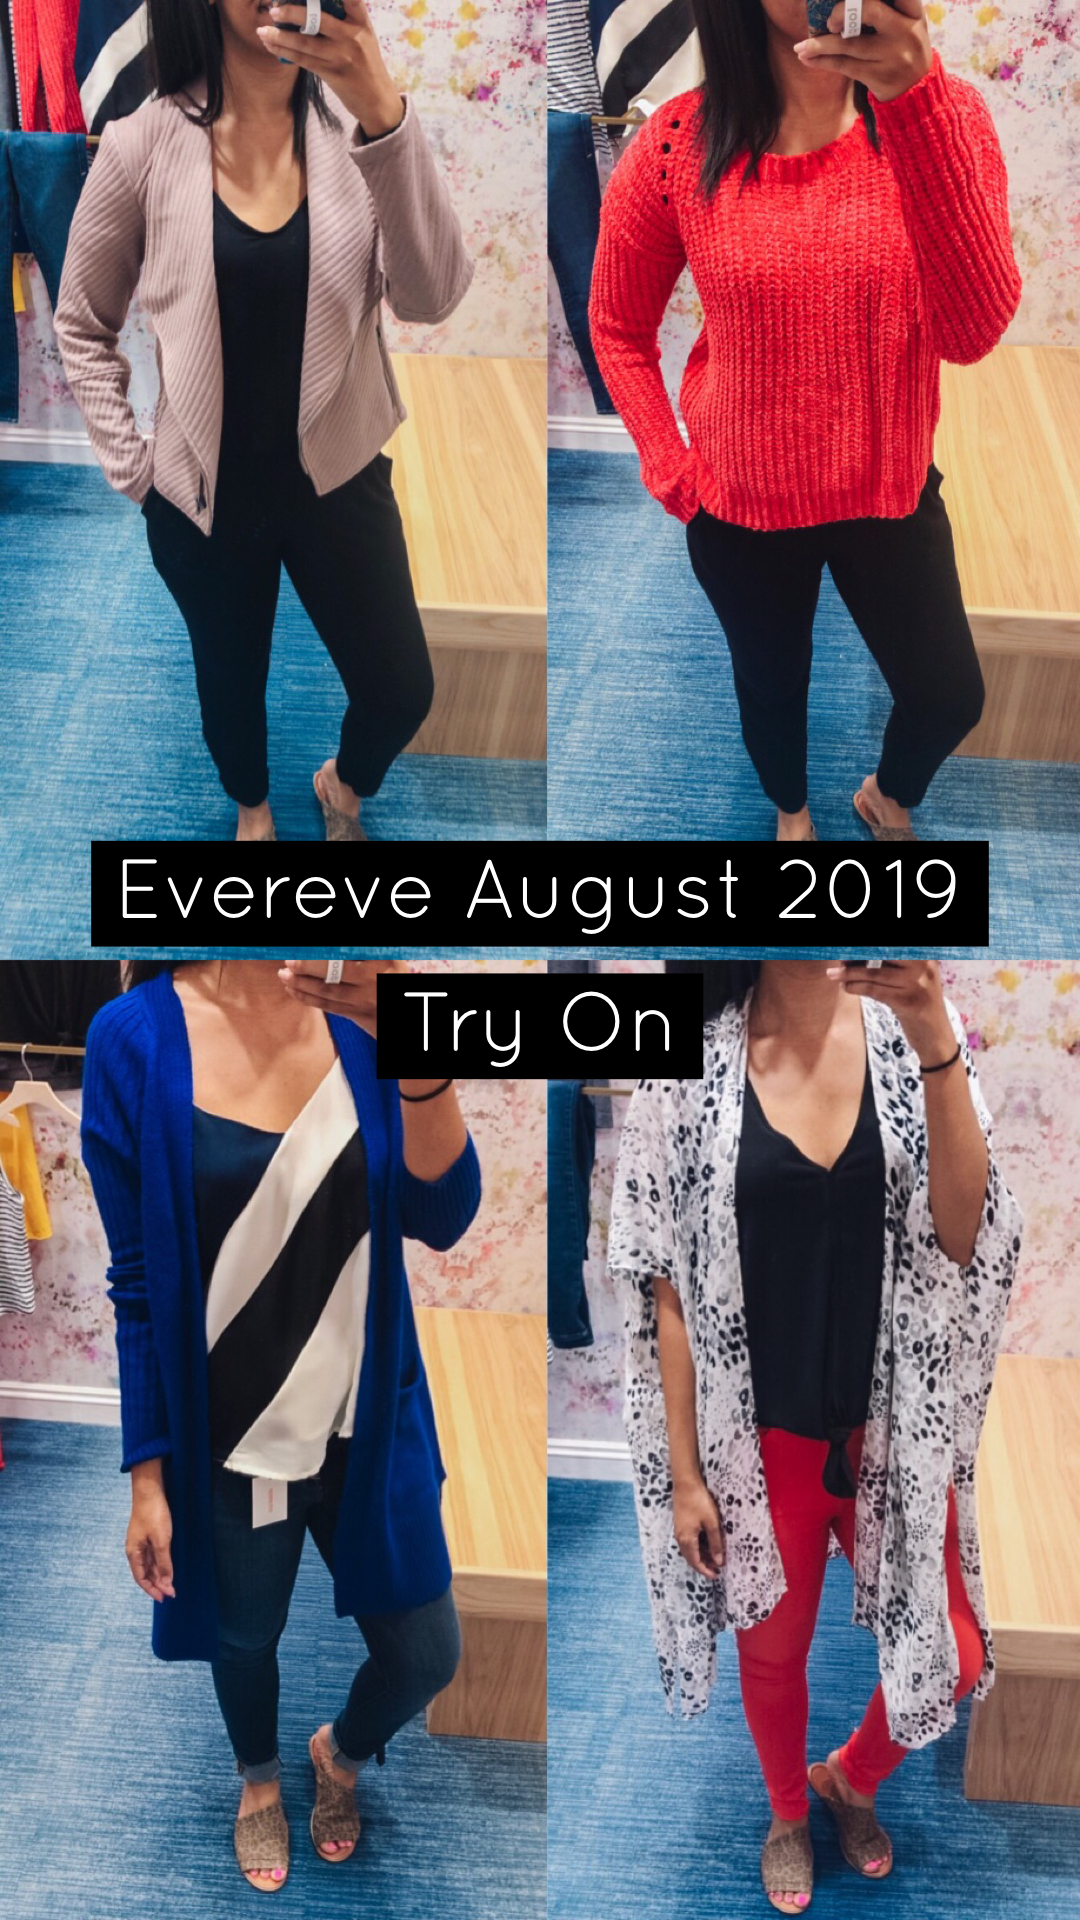 Popular US style blogger, What Nicole Wore, shares an Evereve August try on with outfit ideas to wear as we transition into fall. // evereve try on haul, evereve outfit fall, evereve 2019, black jumpsuit outfit ideas, fall outfit casual, evereve ambassador